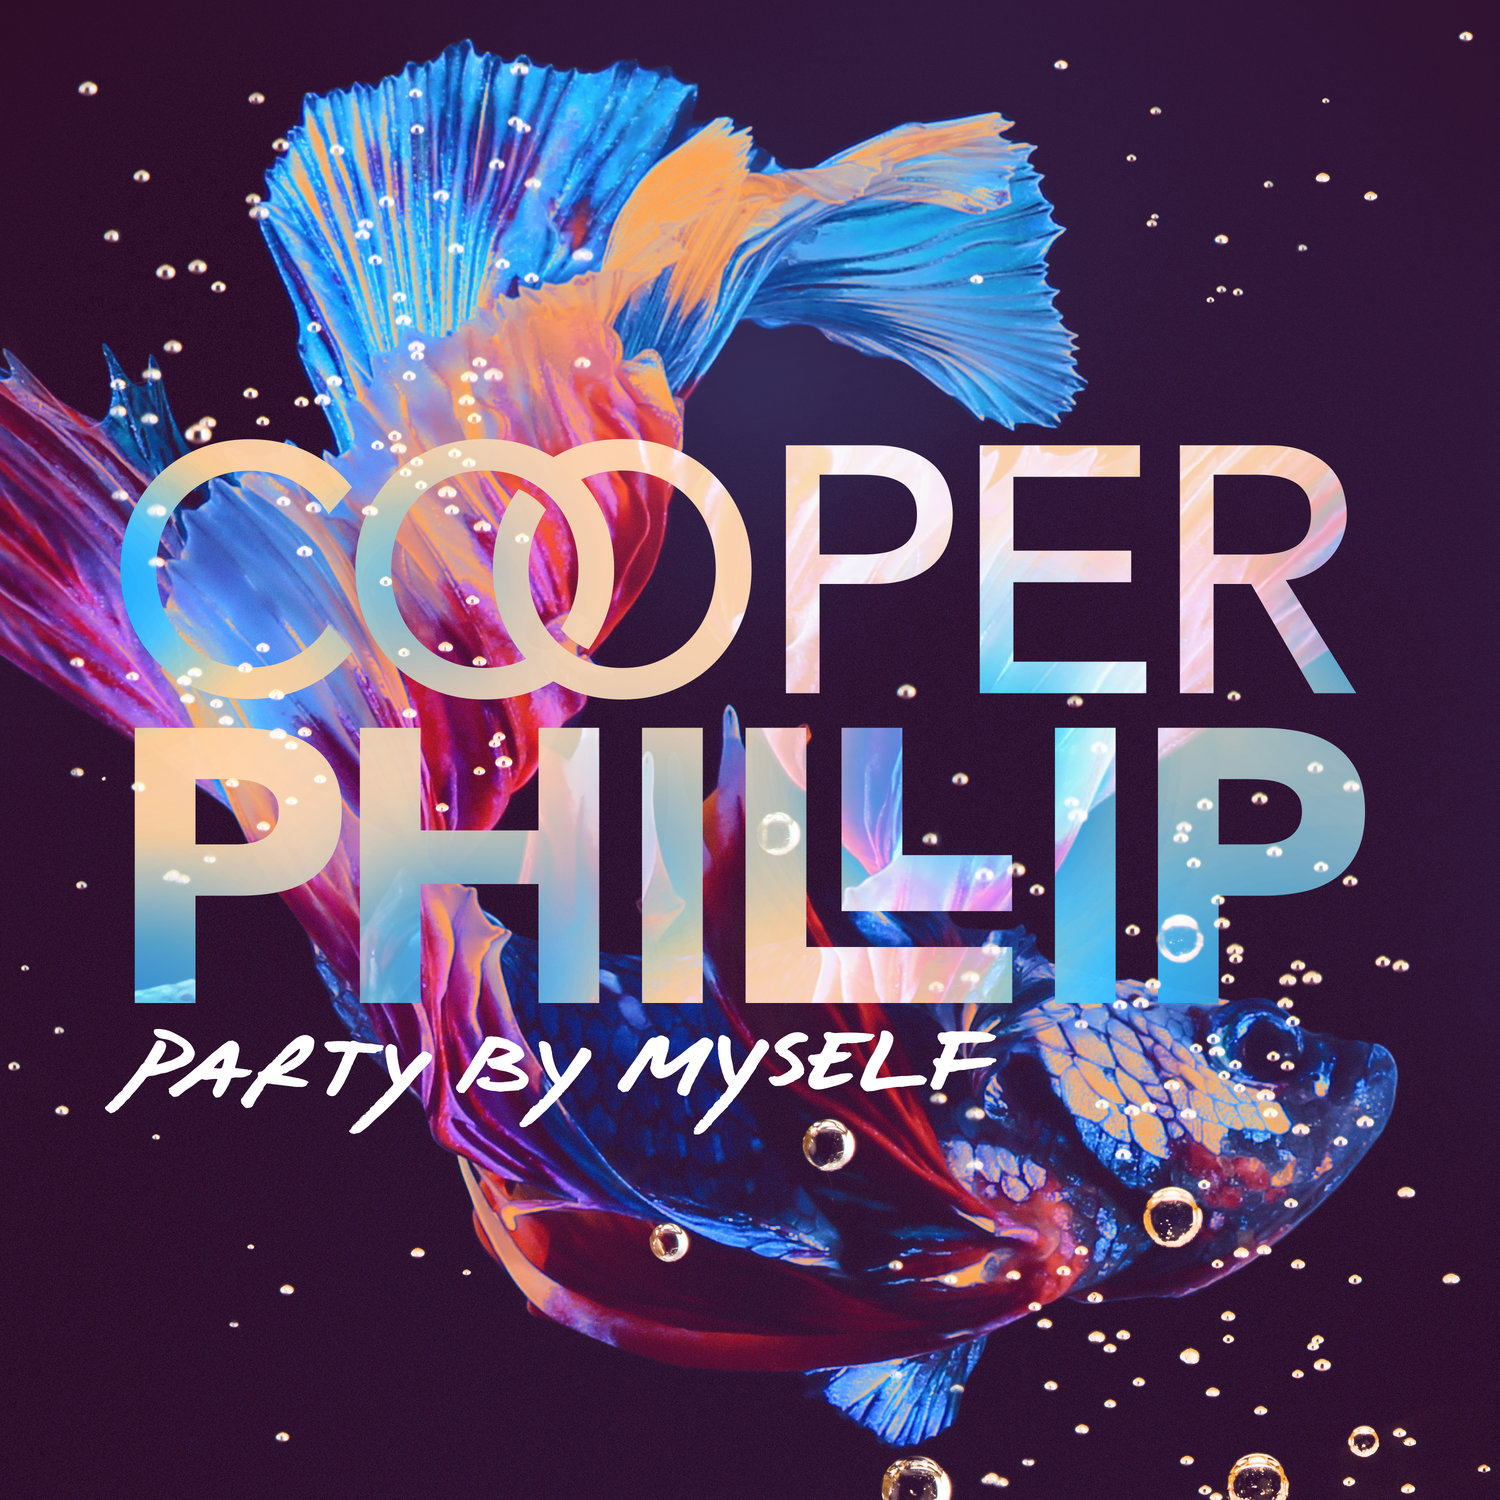 Cooper Phillip Album Artwork  See More →